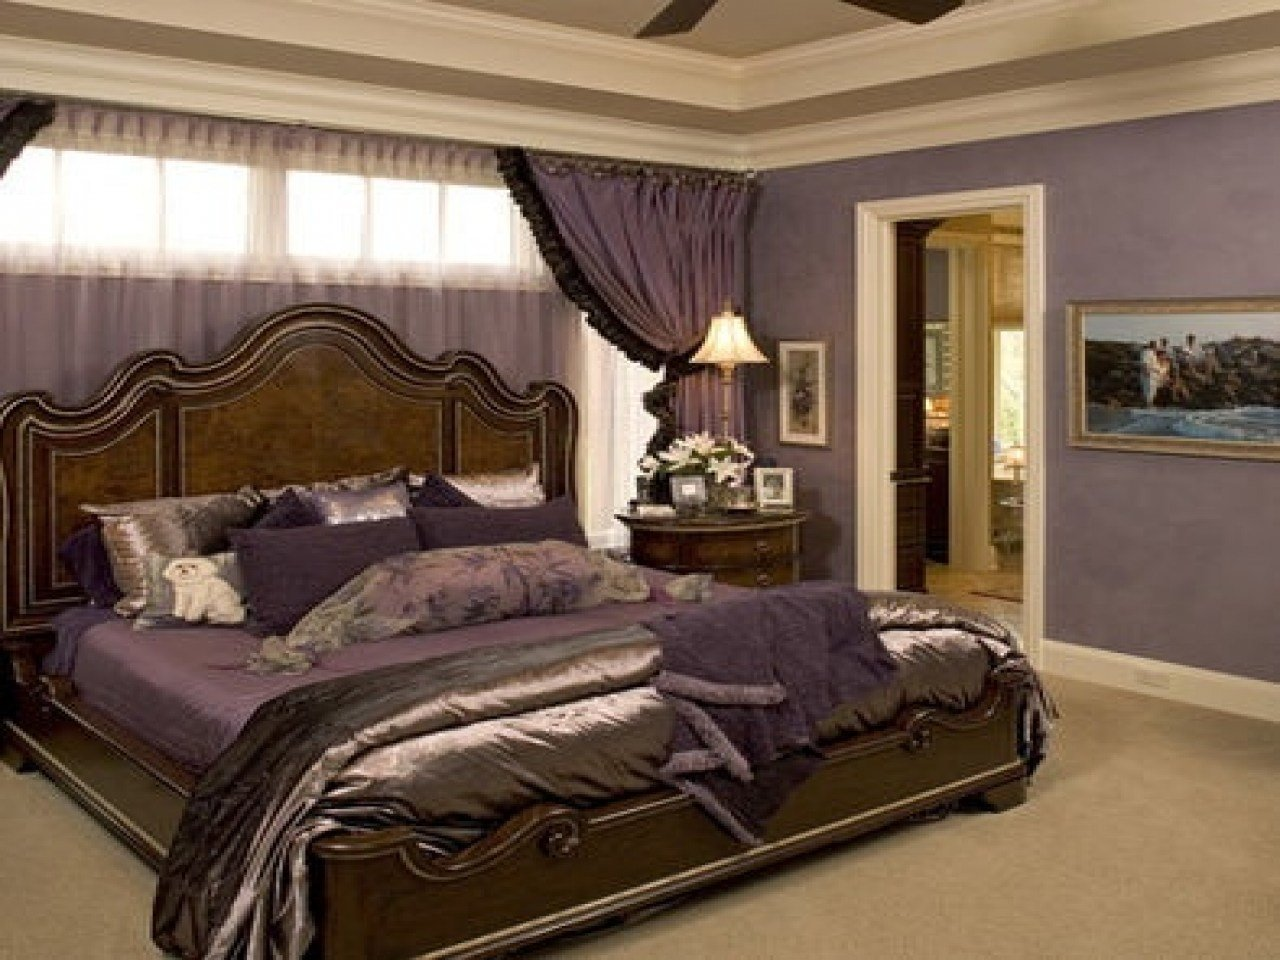 Best Bedroom Purple And Brown My Style Decor Designs With Pictures